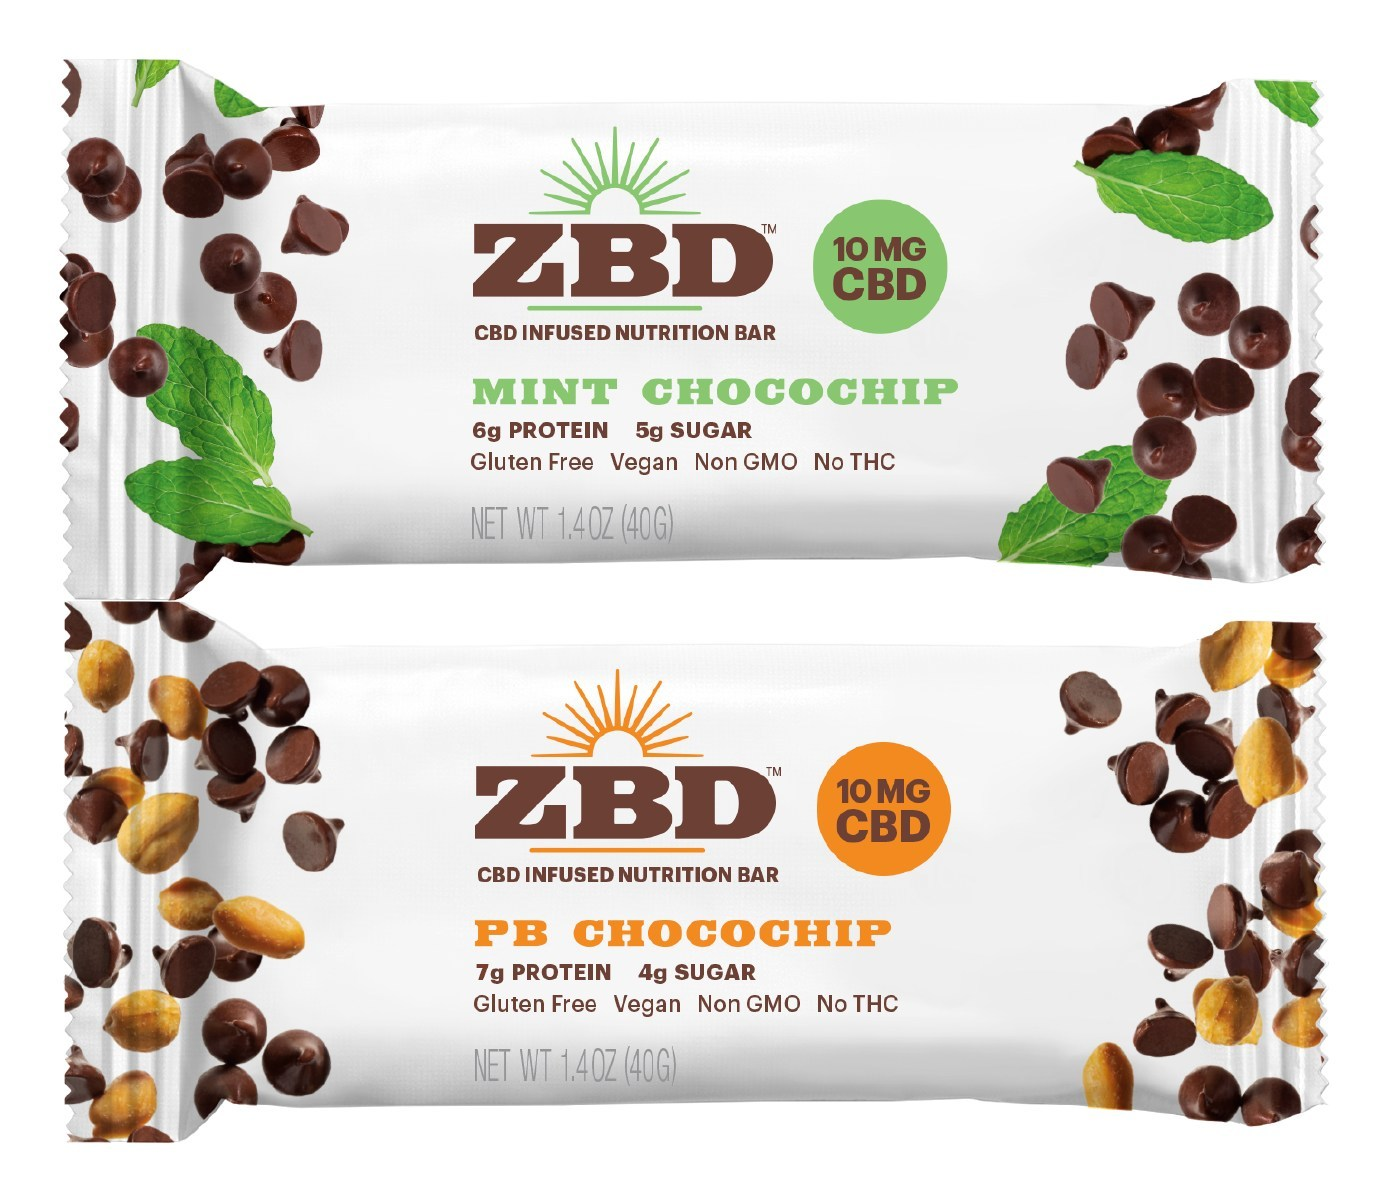 ZBD Health Announces Launch of CBD-Infused Nutrition Bars